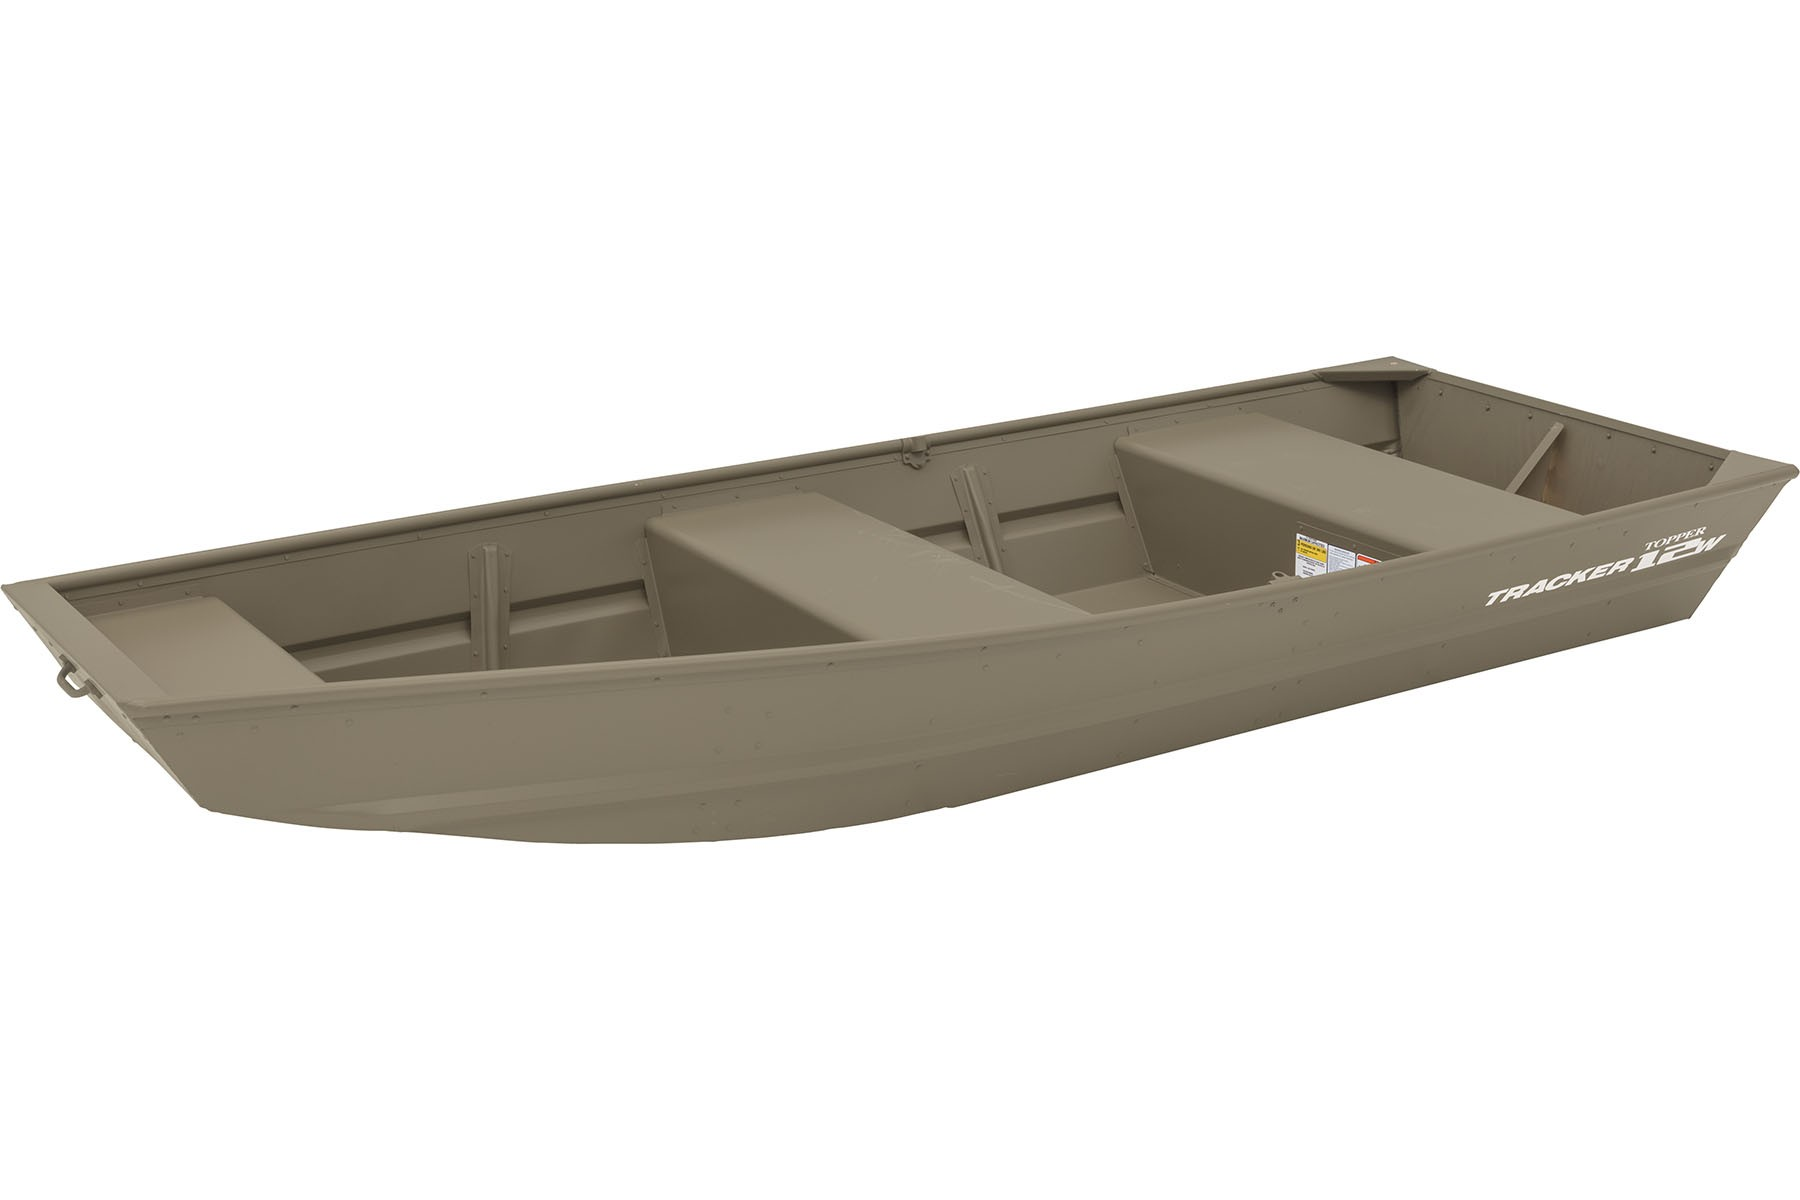 TRACKER Riveted Jon Utility Boats Topper 1236 (1)